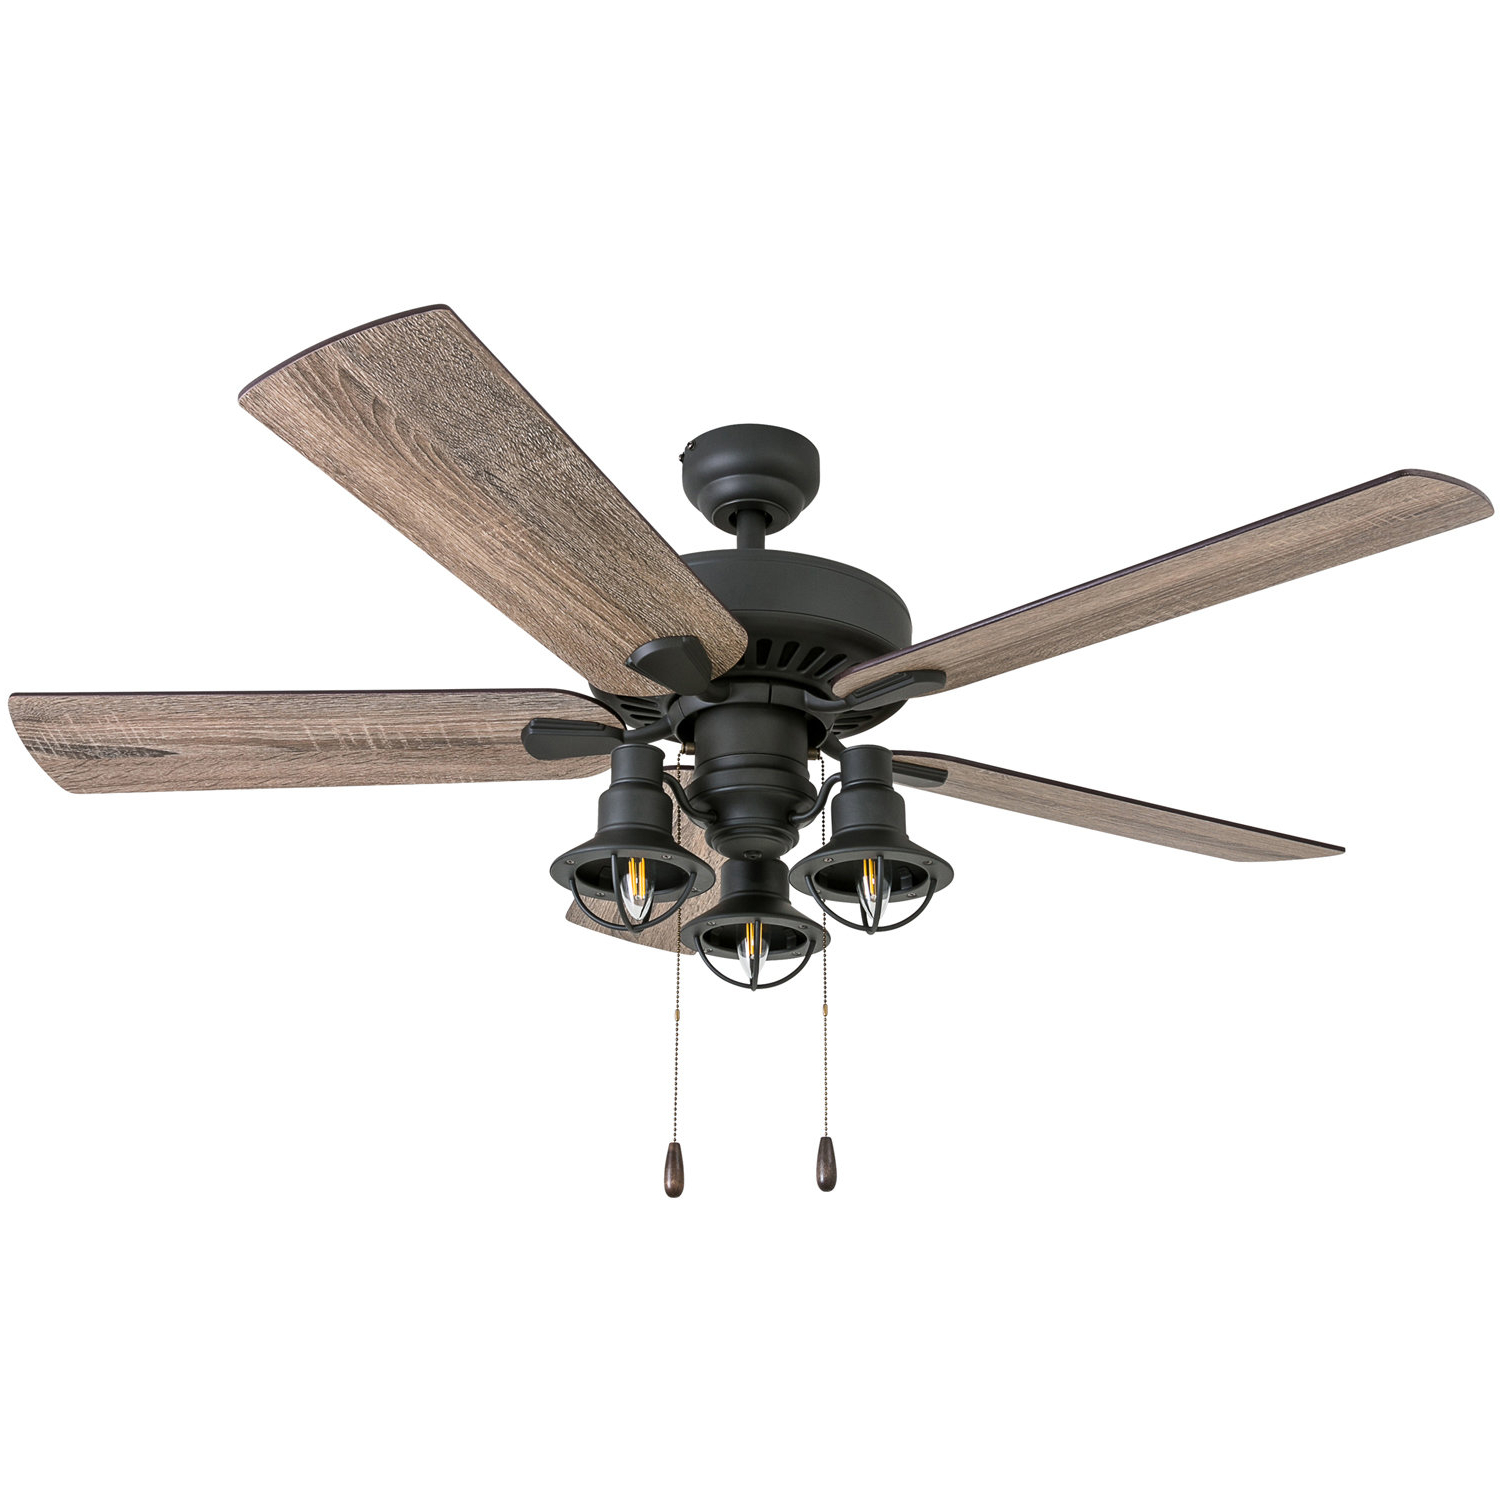 "Trendy 52"" Ravello 5 Blade Led Ceiling Fan, Light Kit Included With Regard To Crestfield 5 Blade Ceiling Fans (View 17 of 20)"